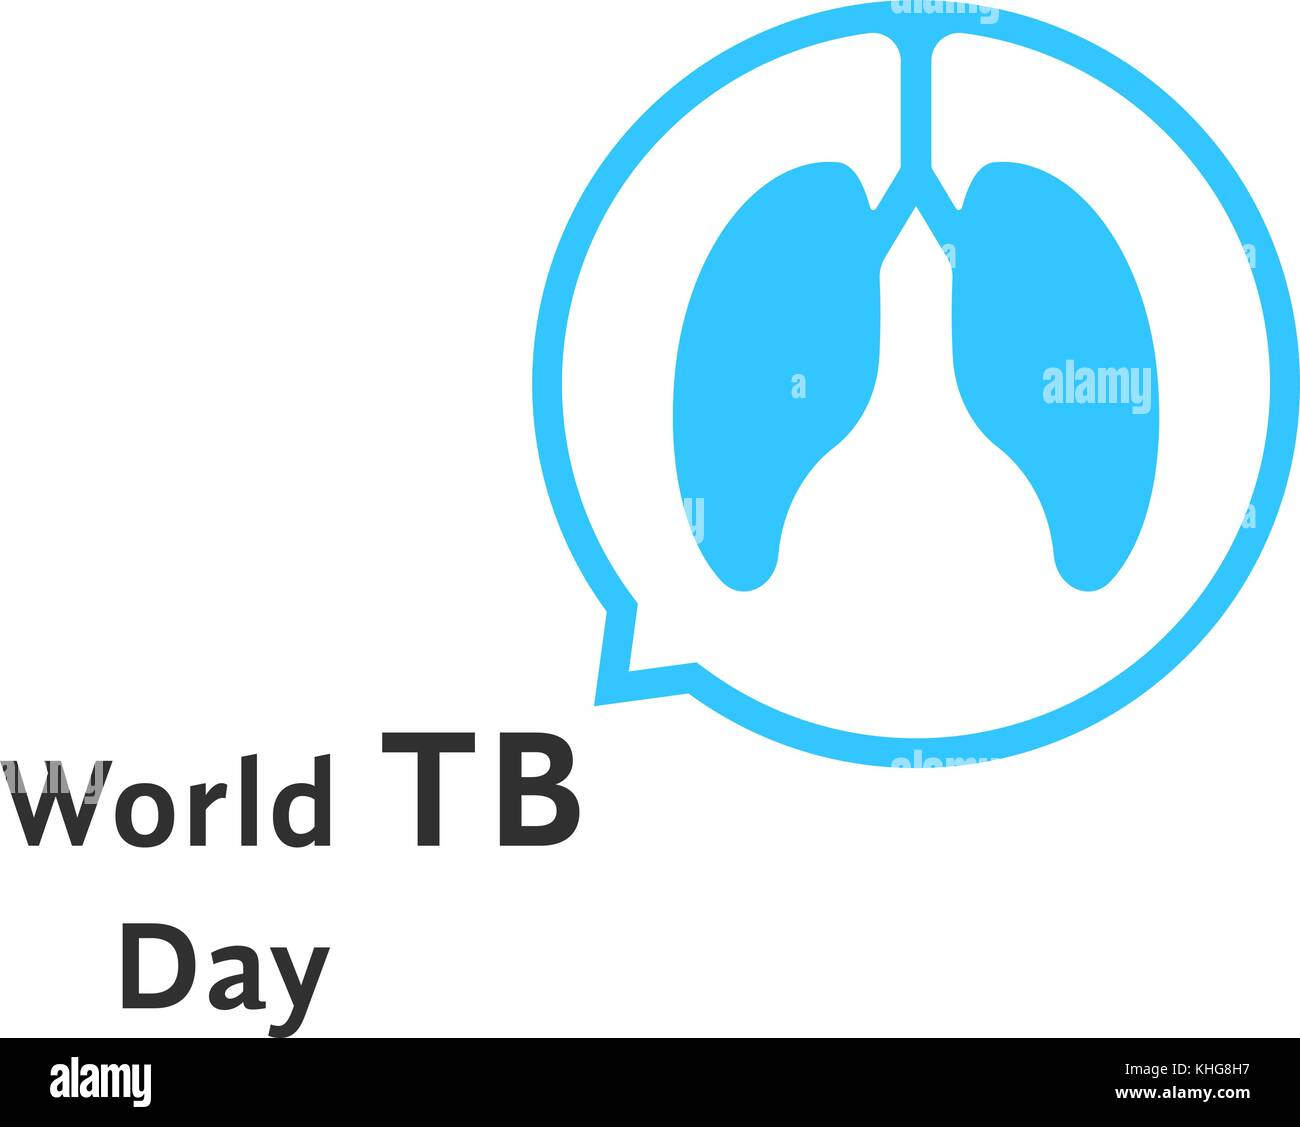 world tb day with blue speech bubble - Stock Image